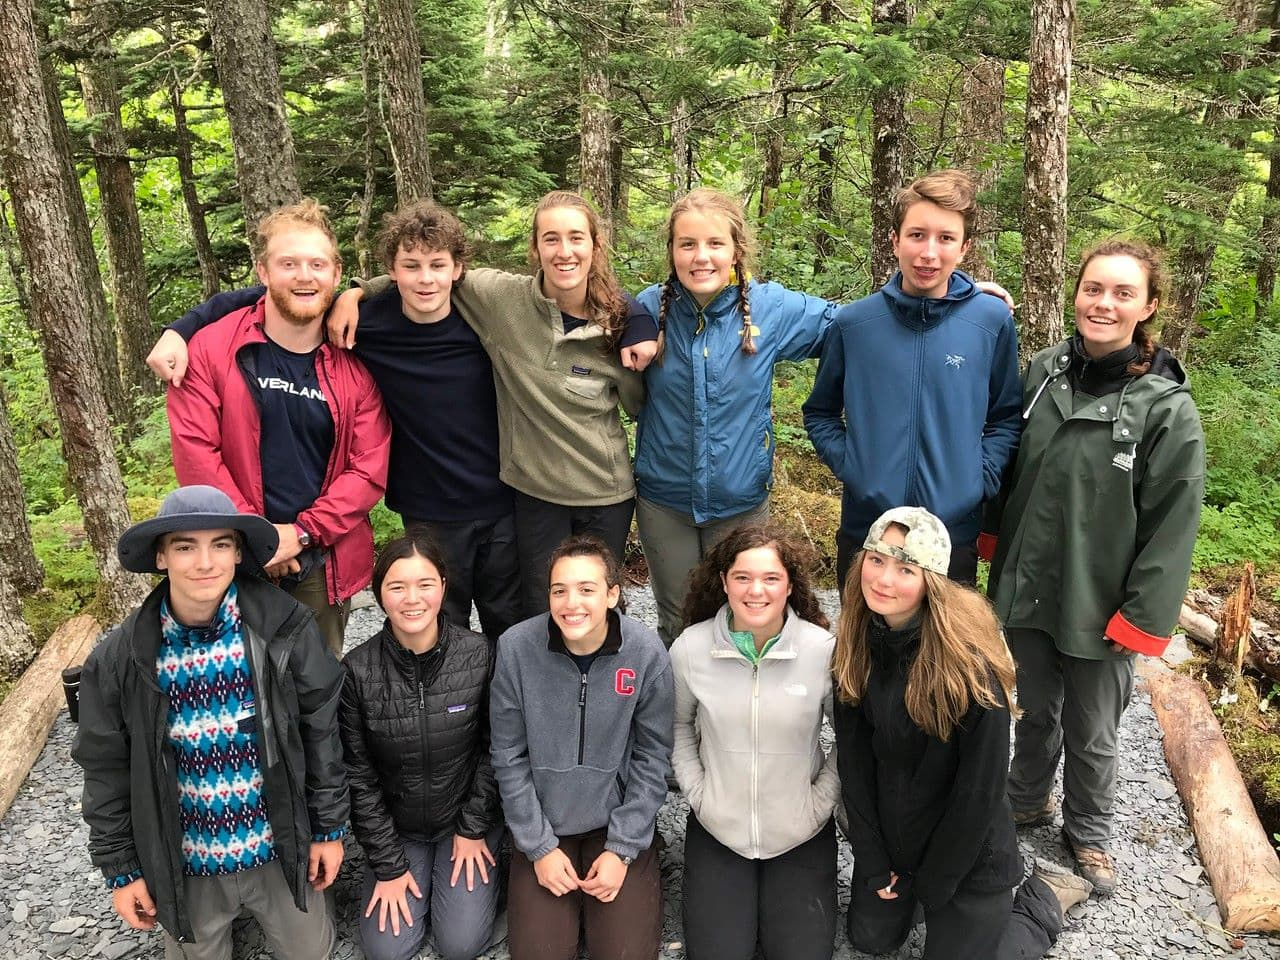 Campers gather for a group photo while on a service and hiking trip in Alaska this Summer